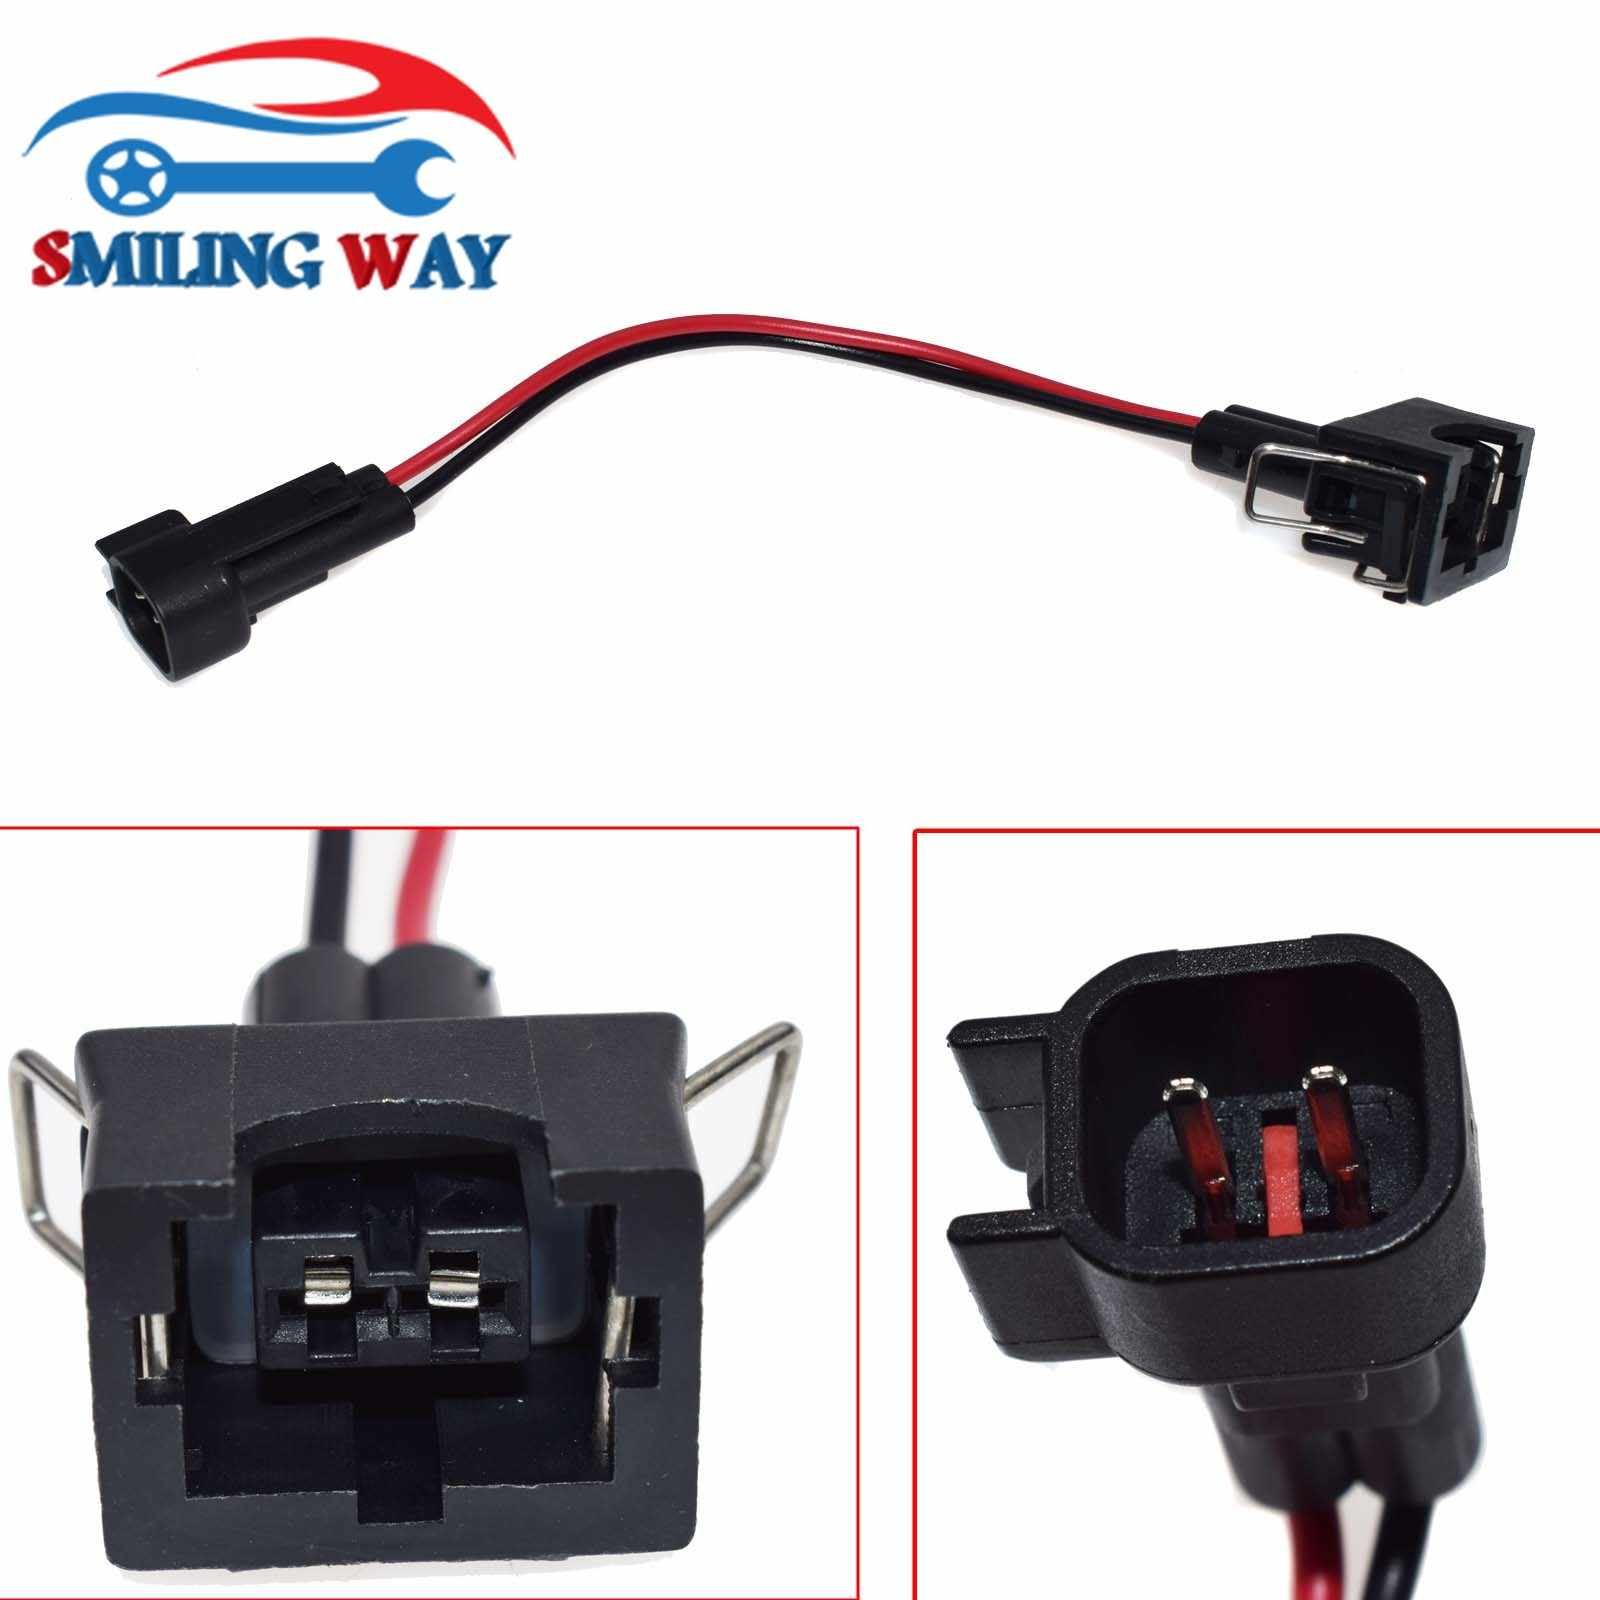 SMILING WAY# Engine Wire Harness Wiring Pigtail LQ4, LQ9 4.8 5.3 6.0 to  Fuel Injector Adapters LS1 LS6 LT1 EV1 Connector    - AliExpresswww.aliexpress.com